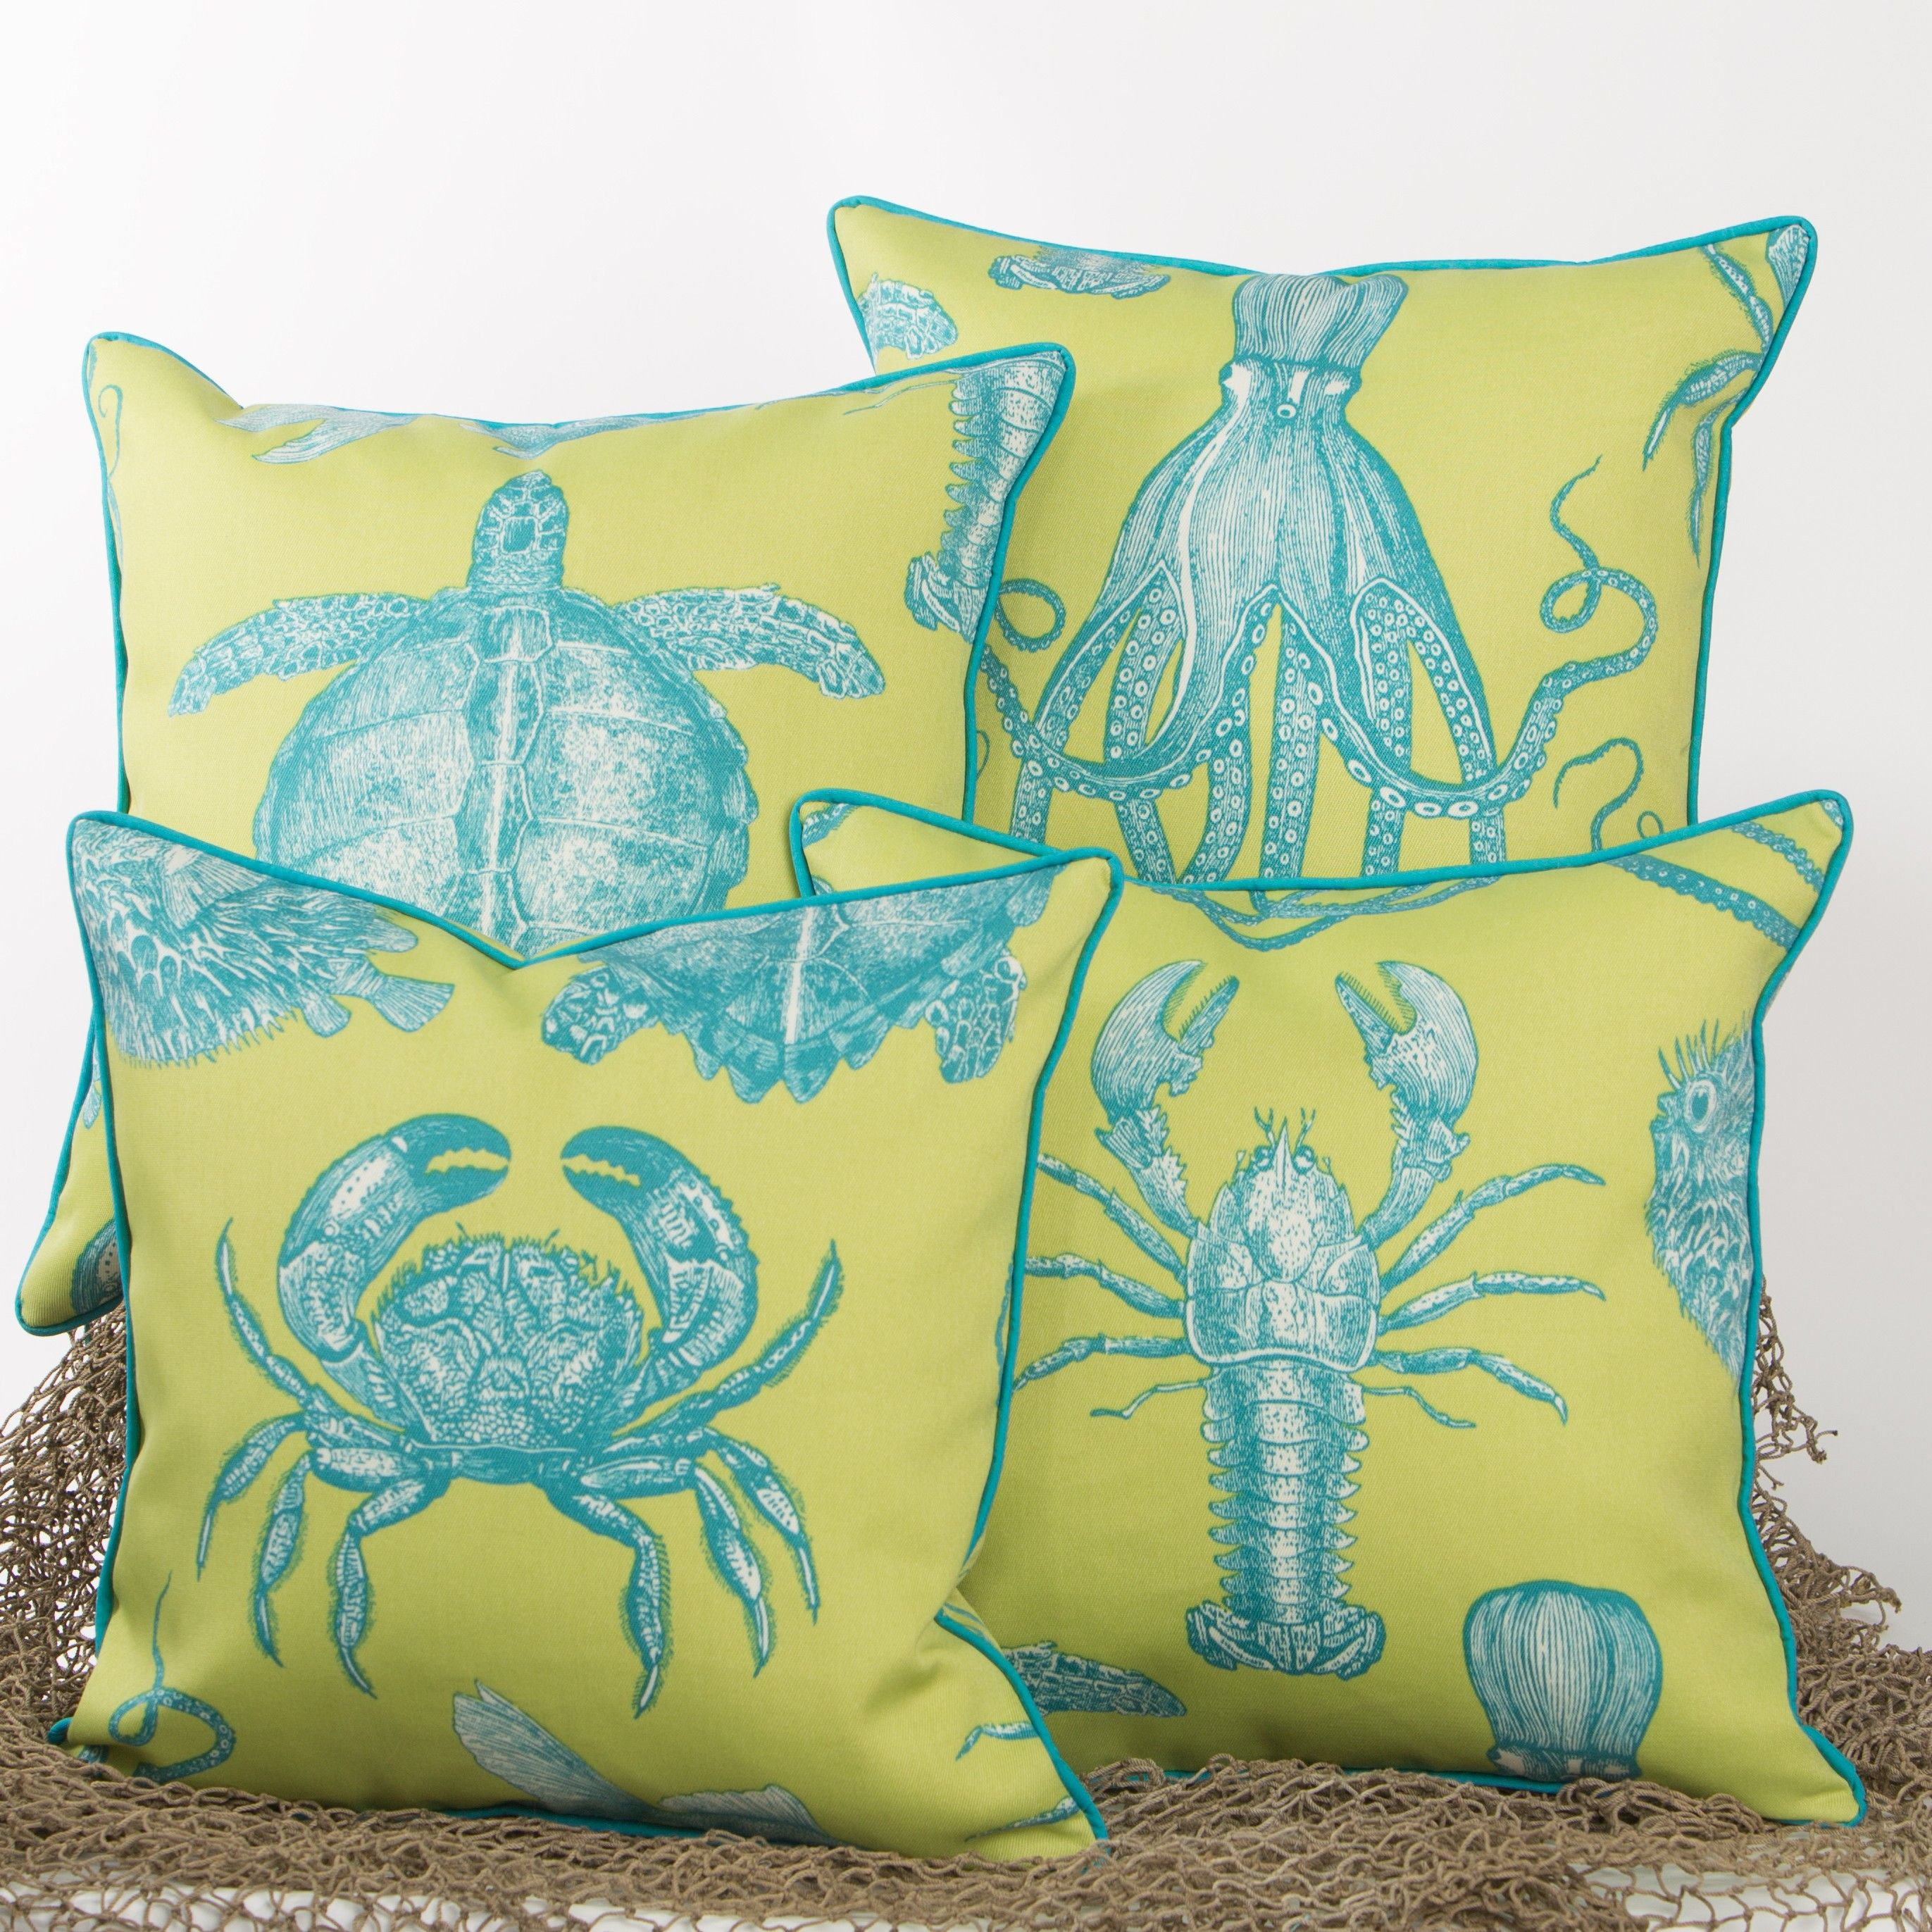 theme cover beach pillow best make design diy ideas pillows to house